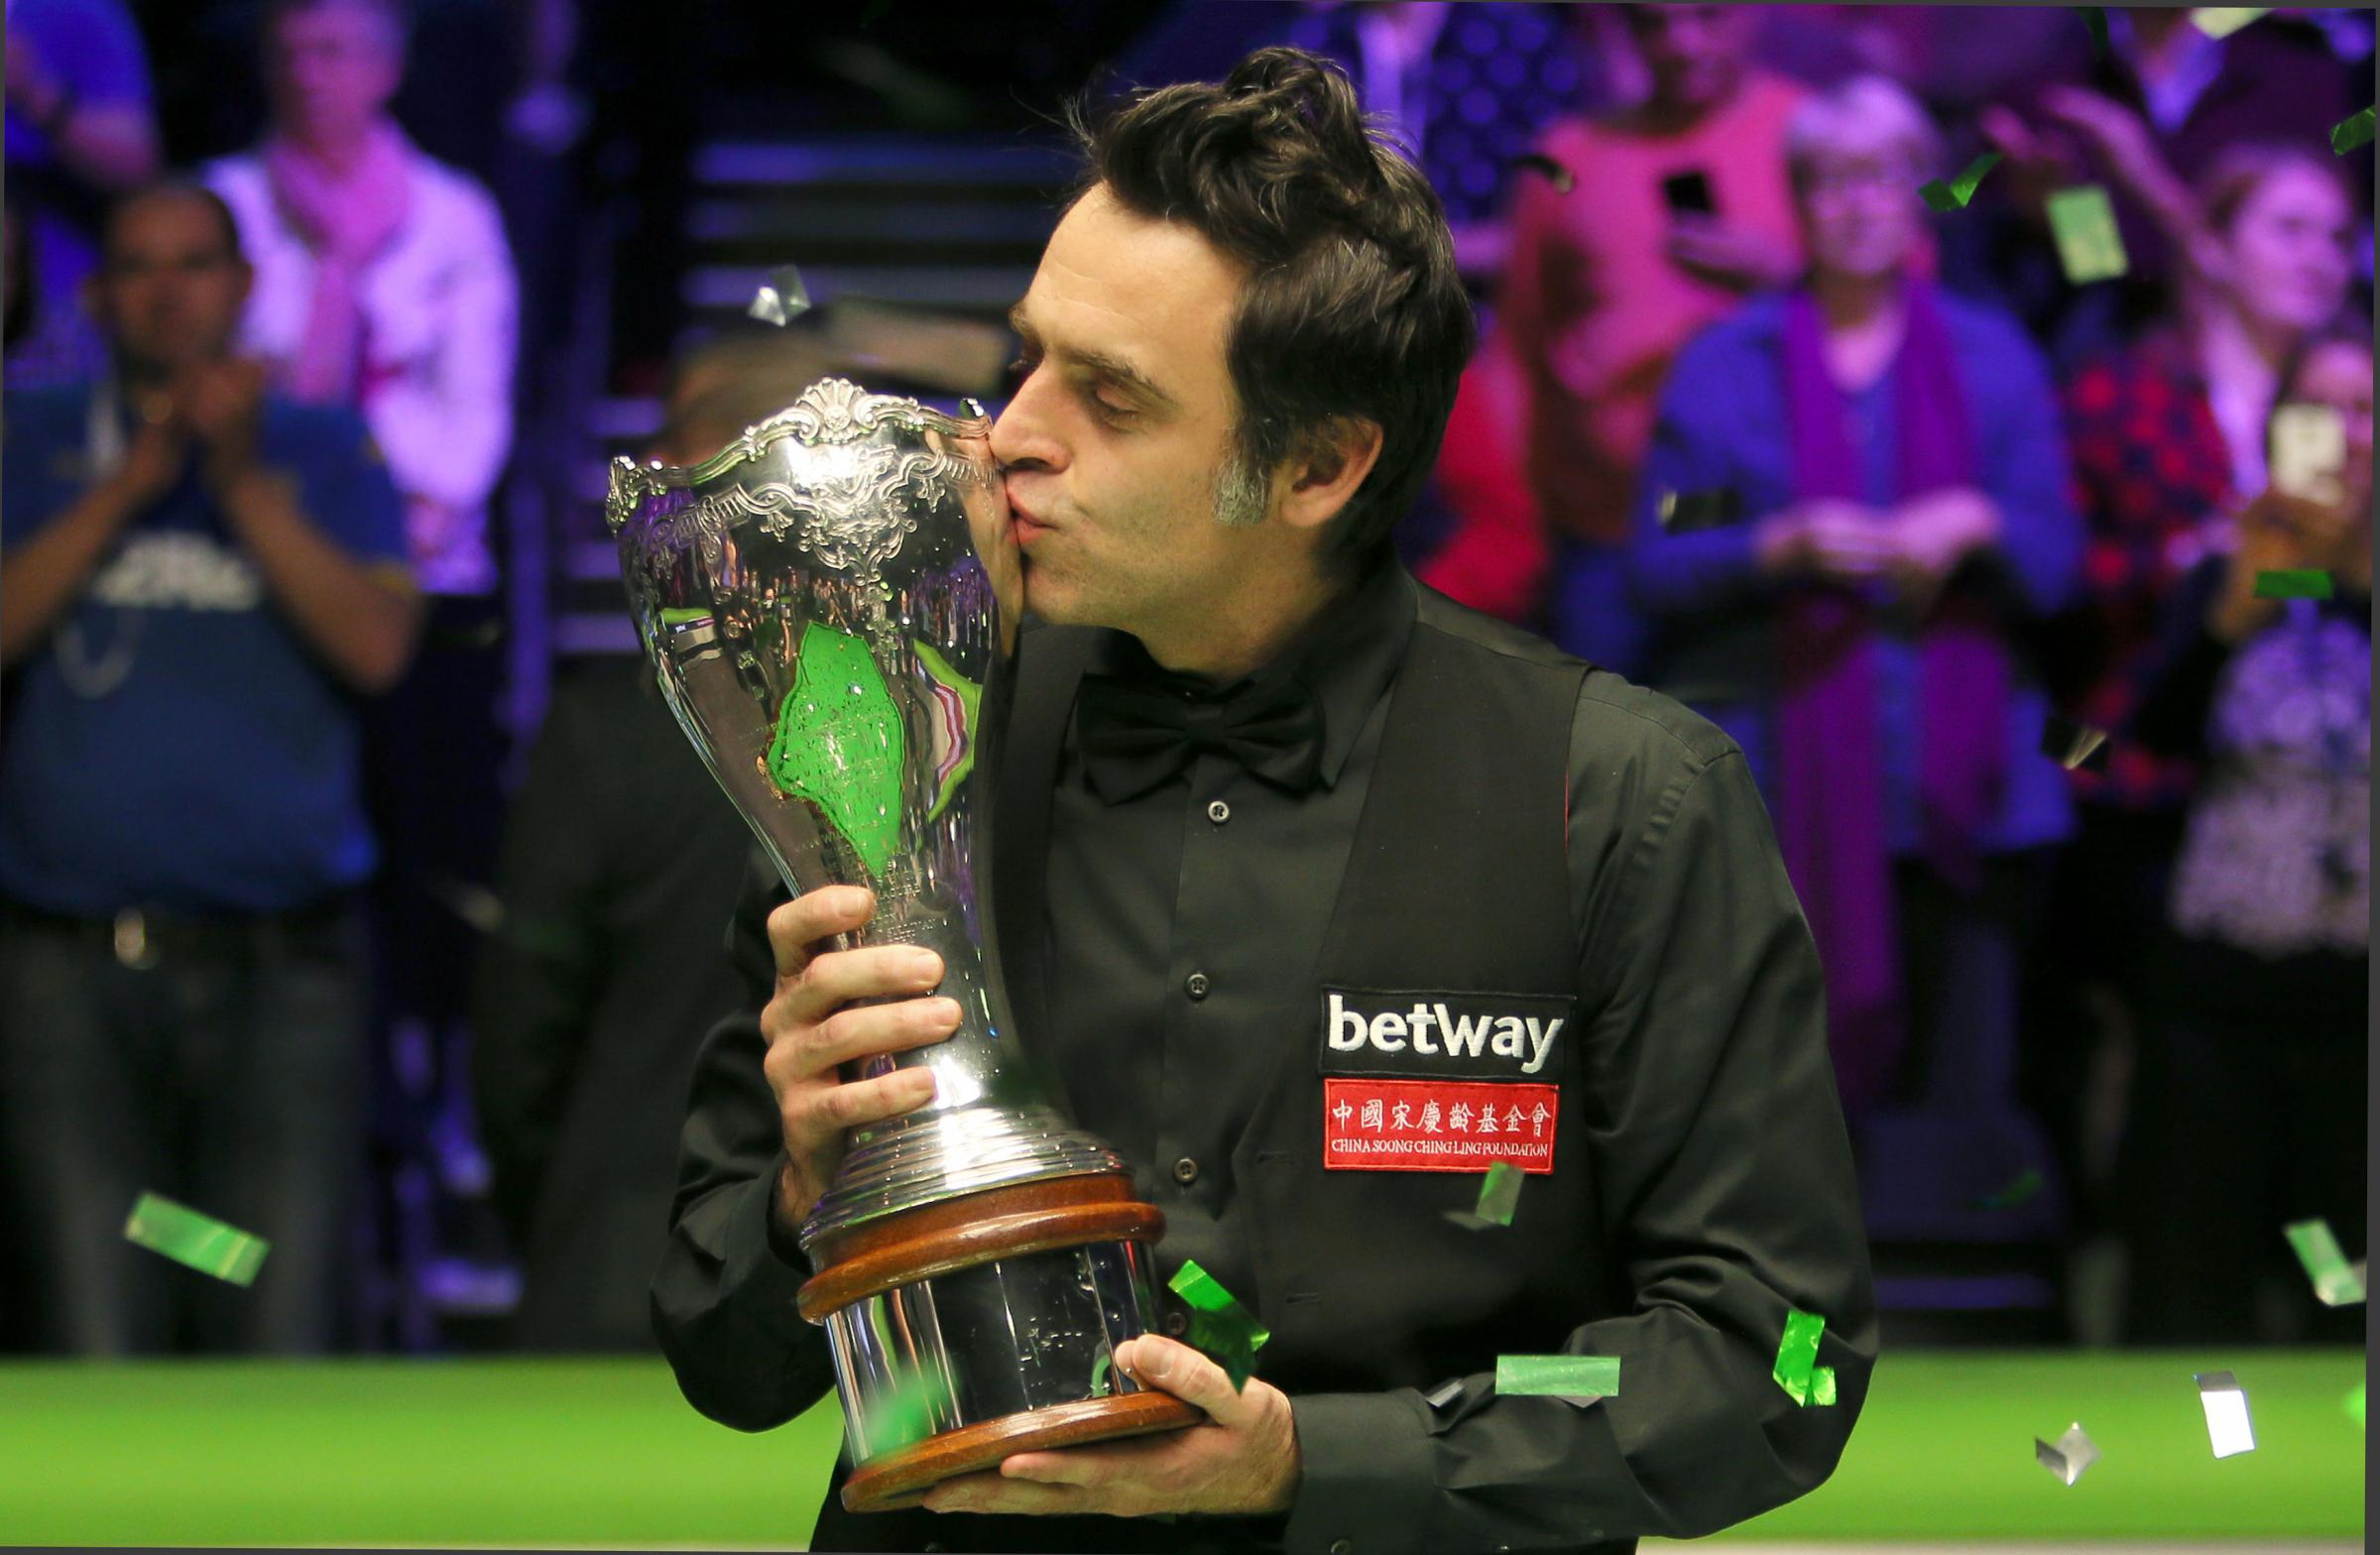 Ronnie O'Sullivan drew level in the snooker record books with Steve Davis and Stephen Hendry on a night to savour in York